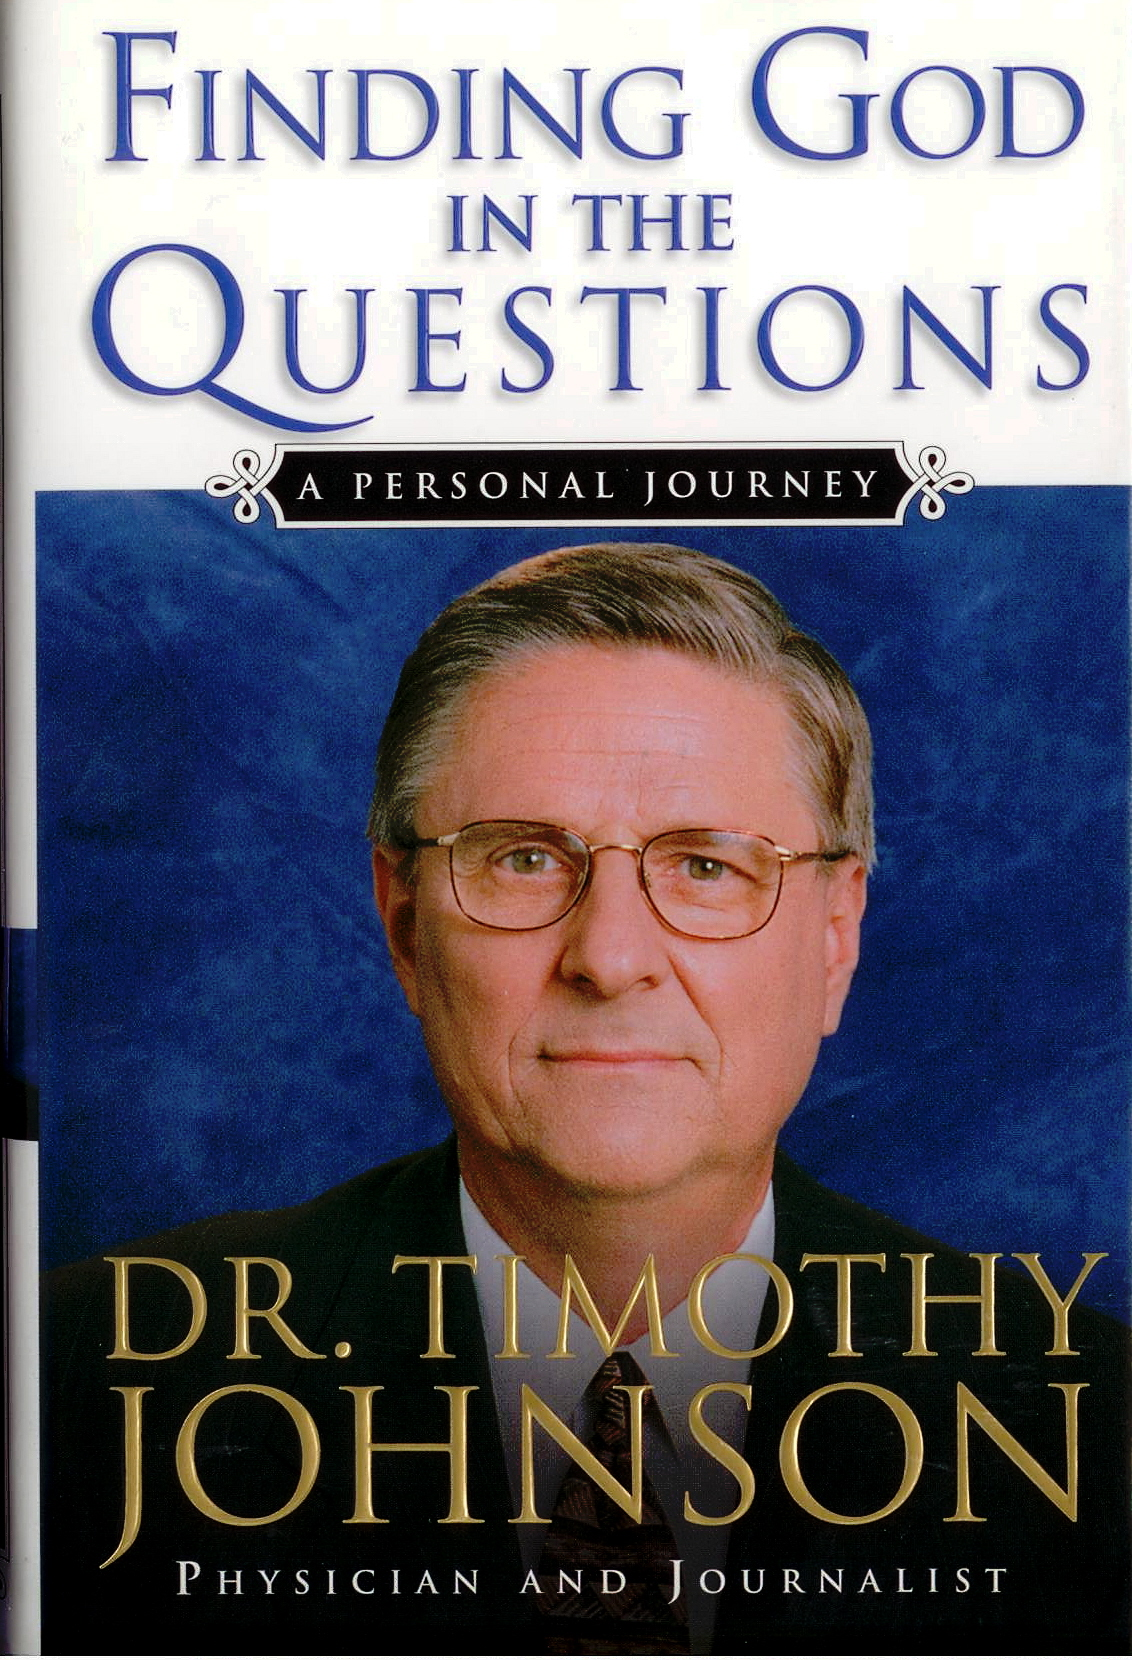 Finding God In The Questions by Dr. Timothy Johnson